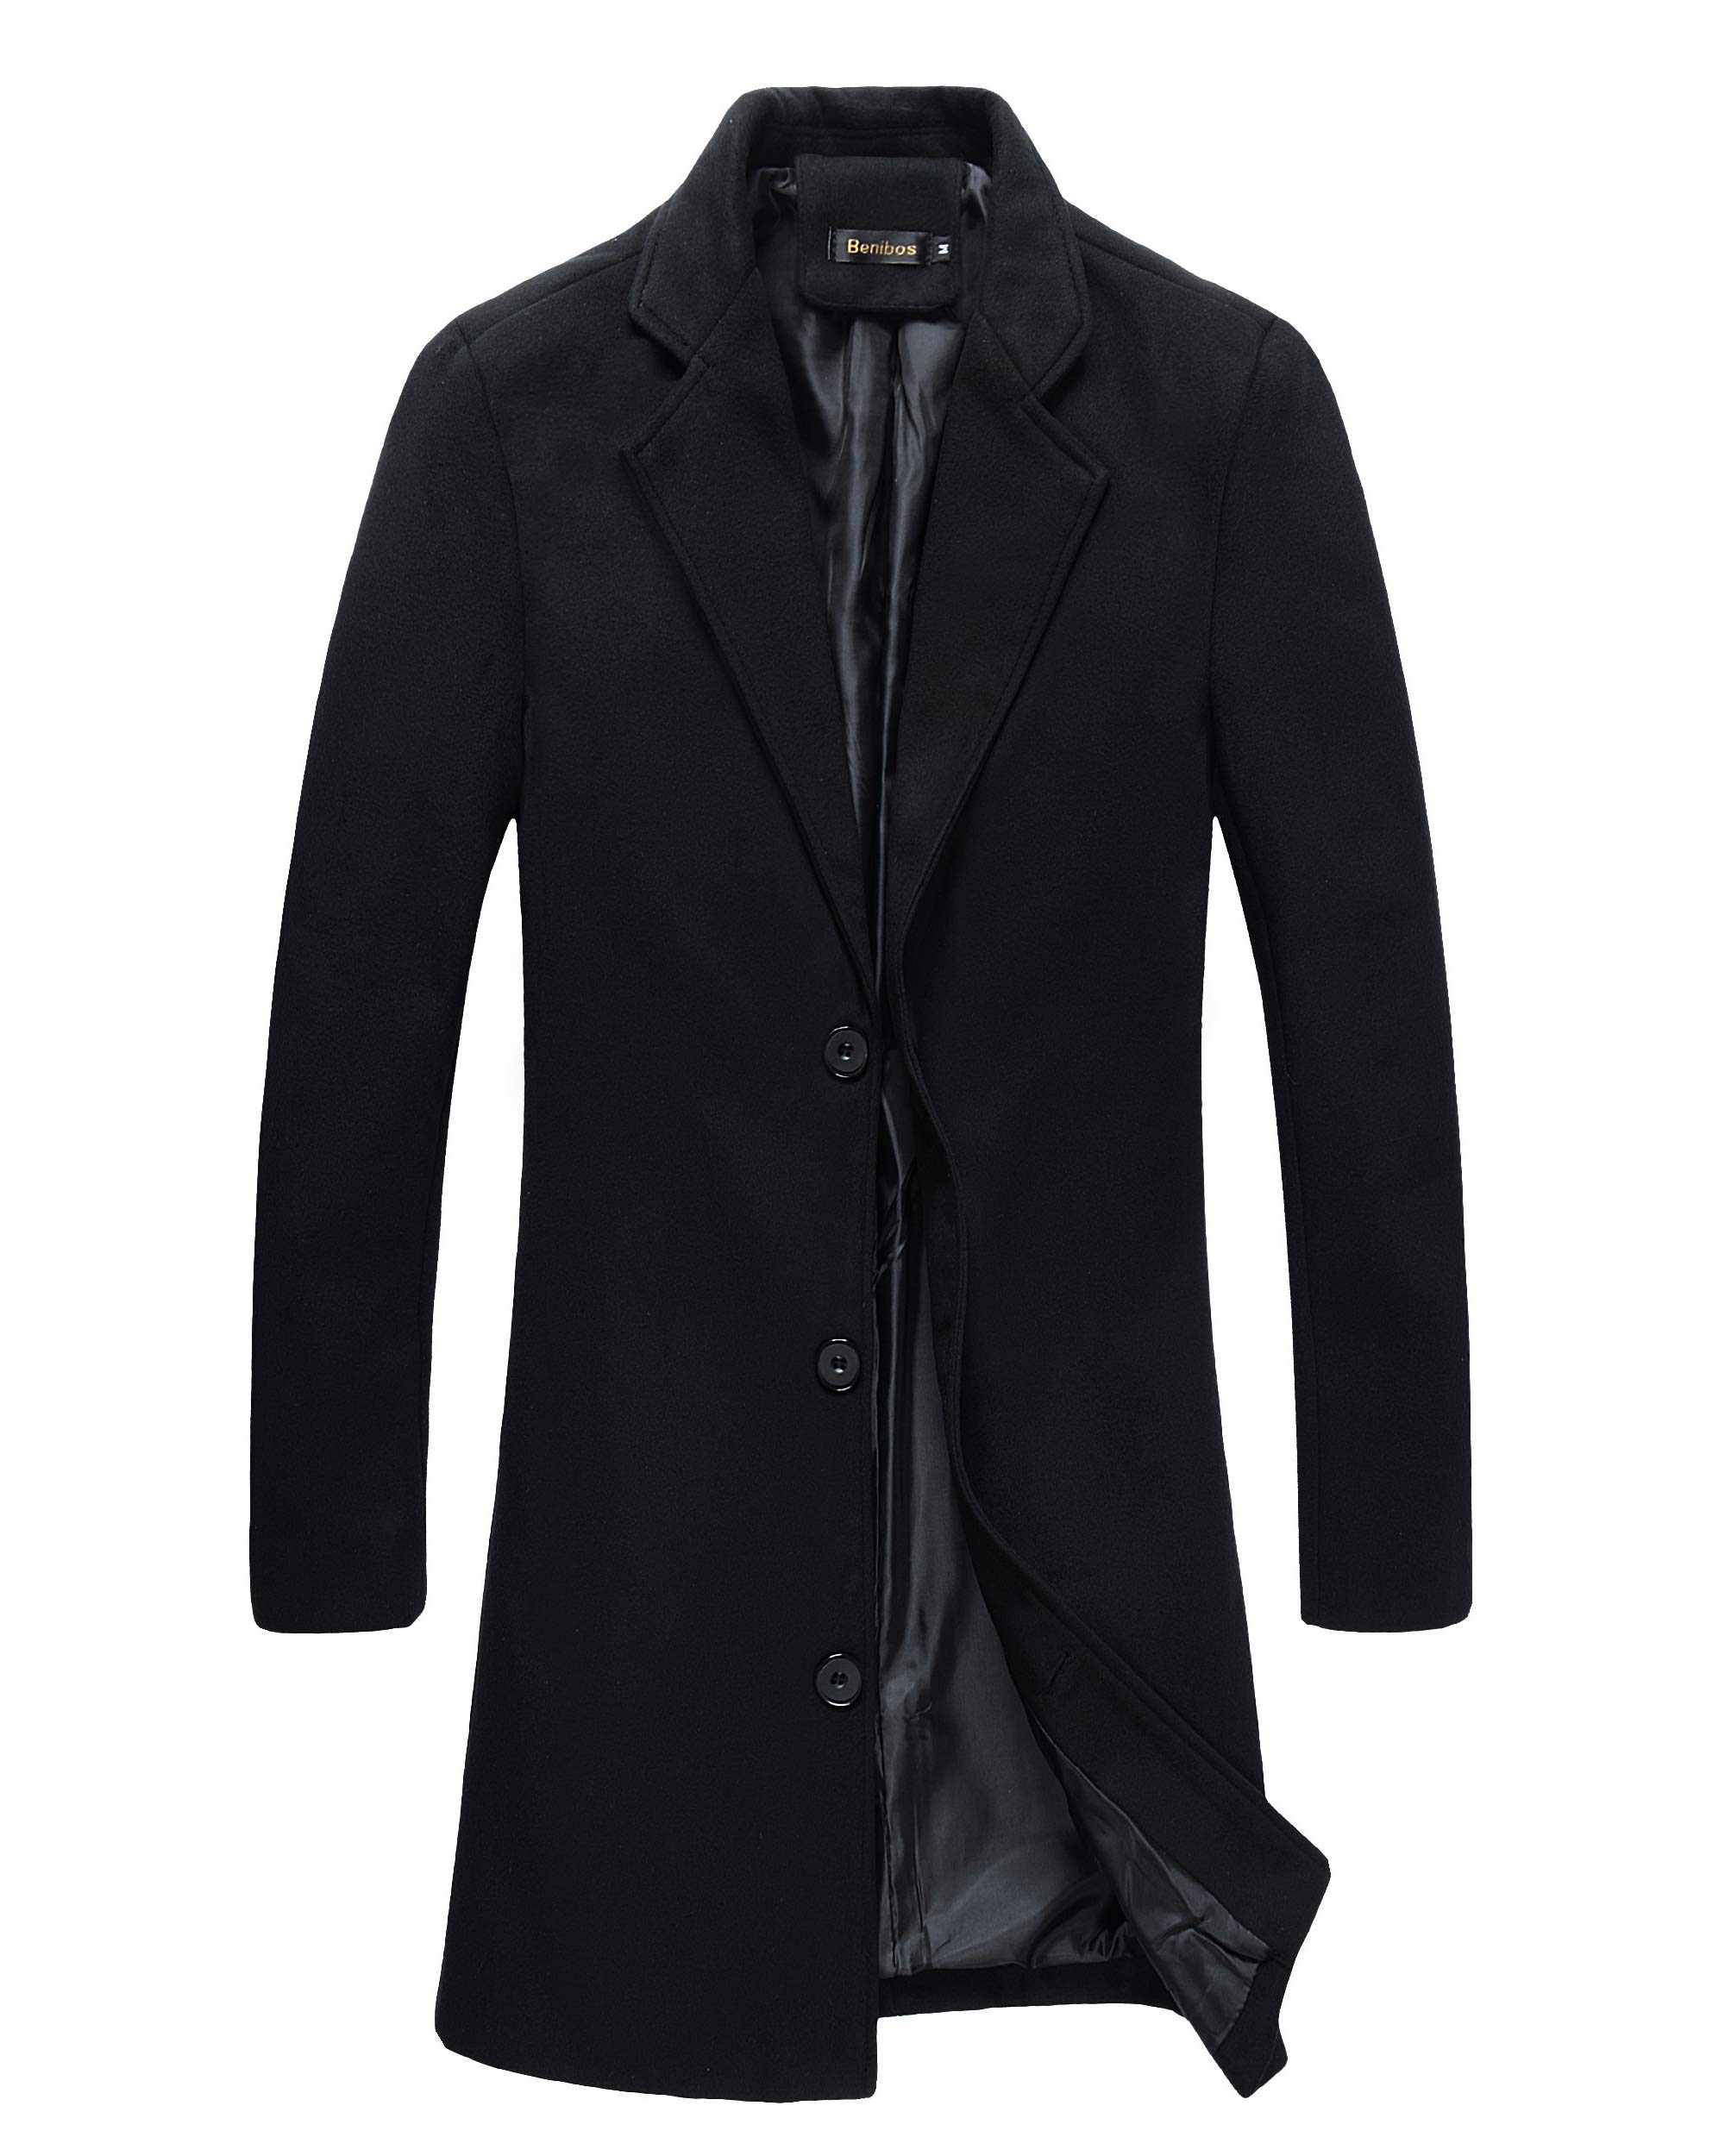 Beninos Mens Trench Coat Slim Fit Notched Collar Overcoat (M, F20 Black) by Beninos